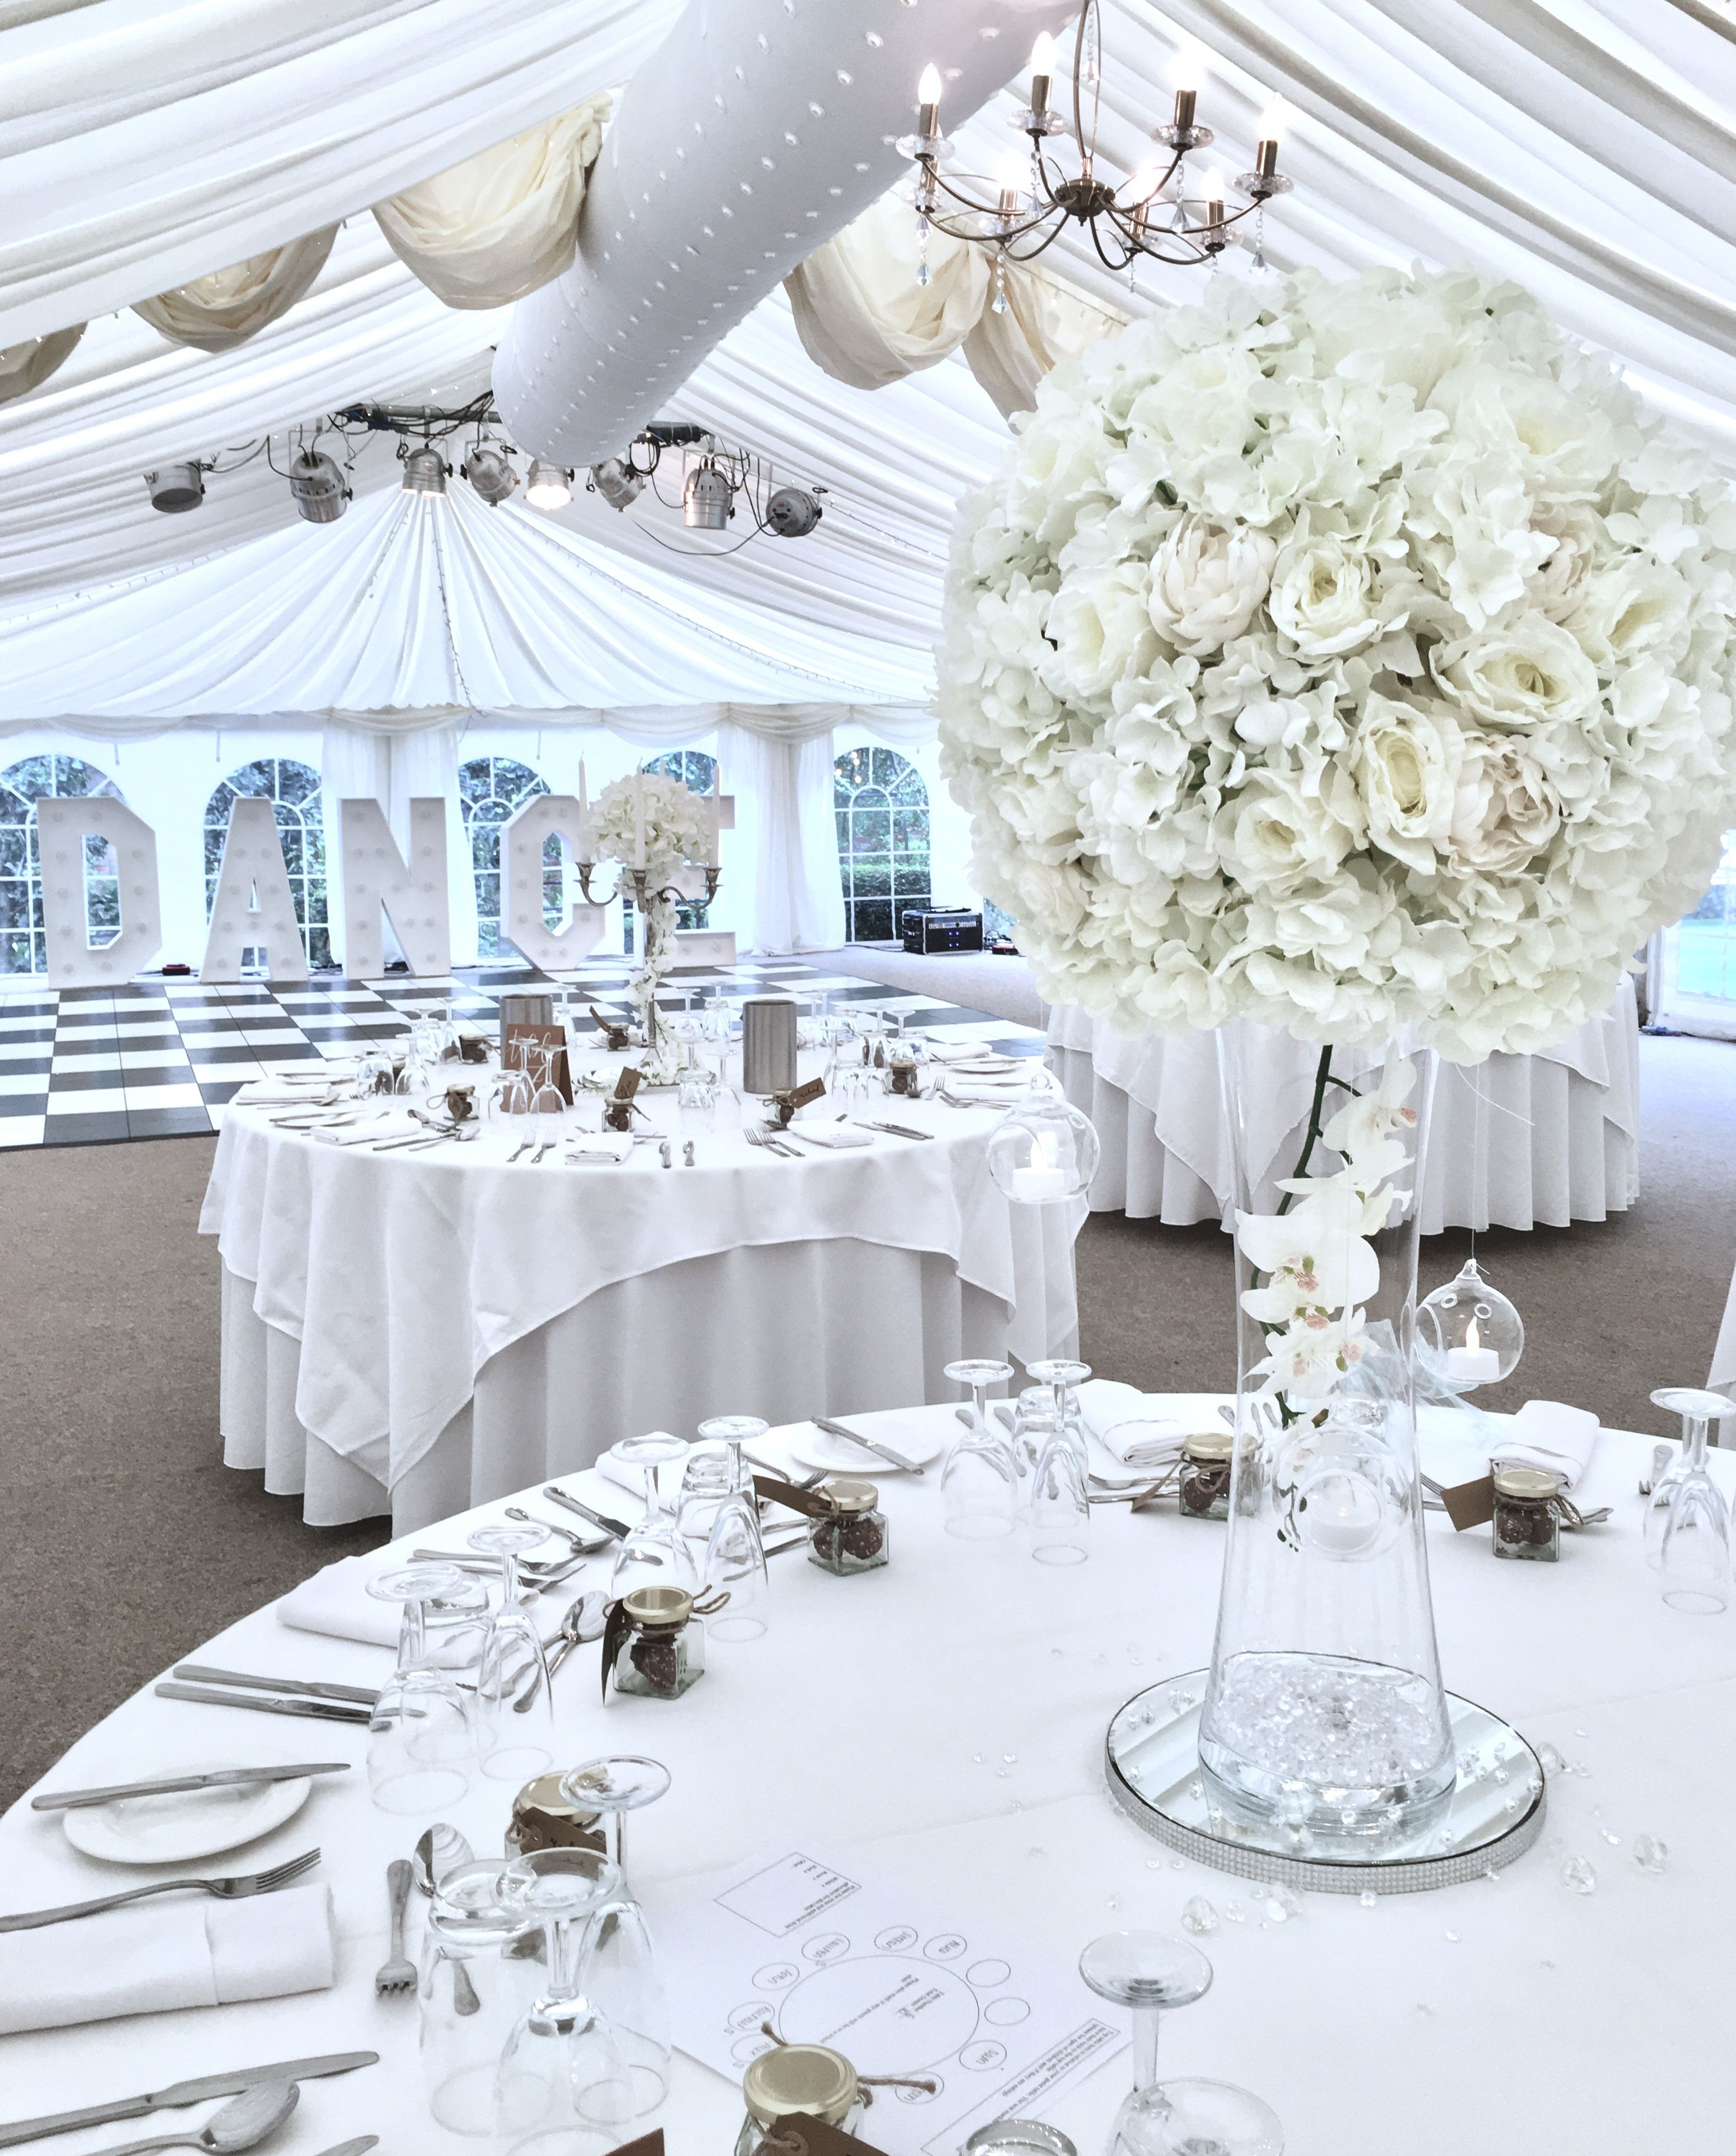 Wedding Table Decorations A Beautifully Styled Table Will Make An Instant Impressi In 2020 Table Decorations Wedding Reception Table Decorations Table Lanterns Wedding